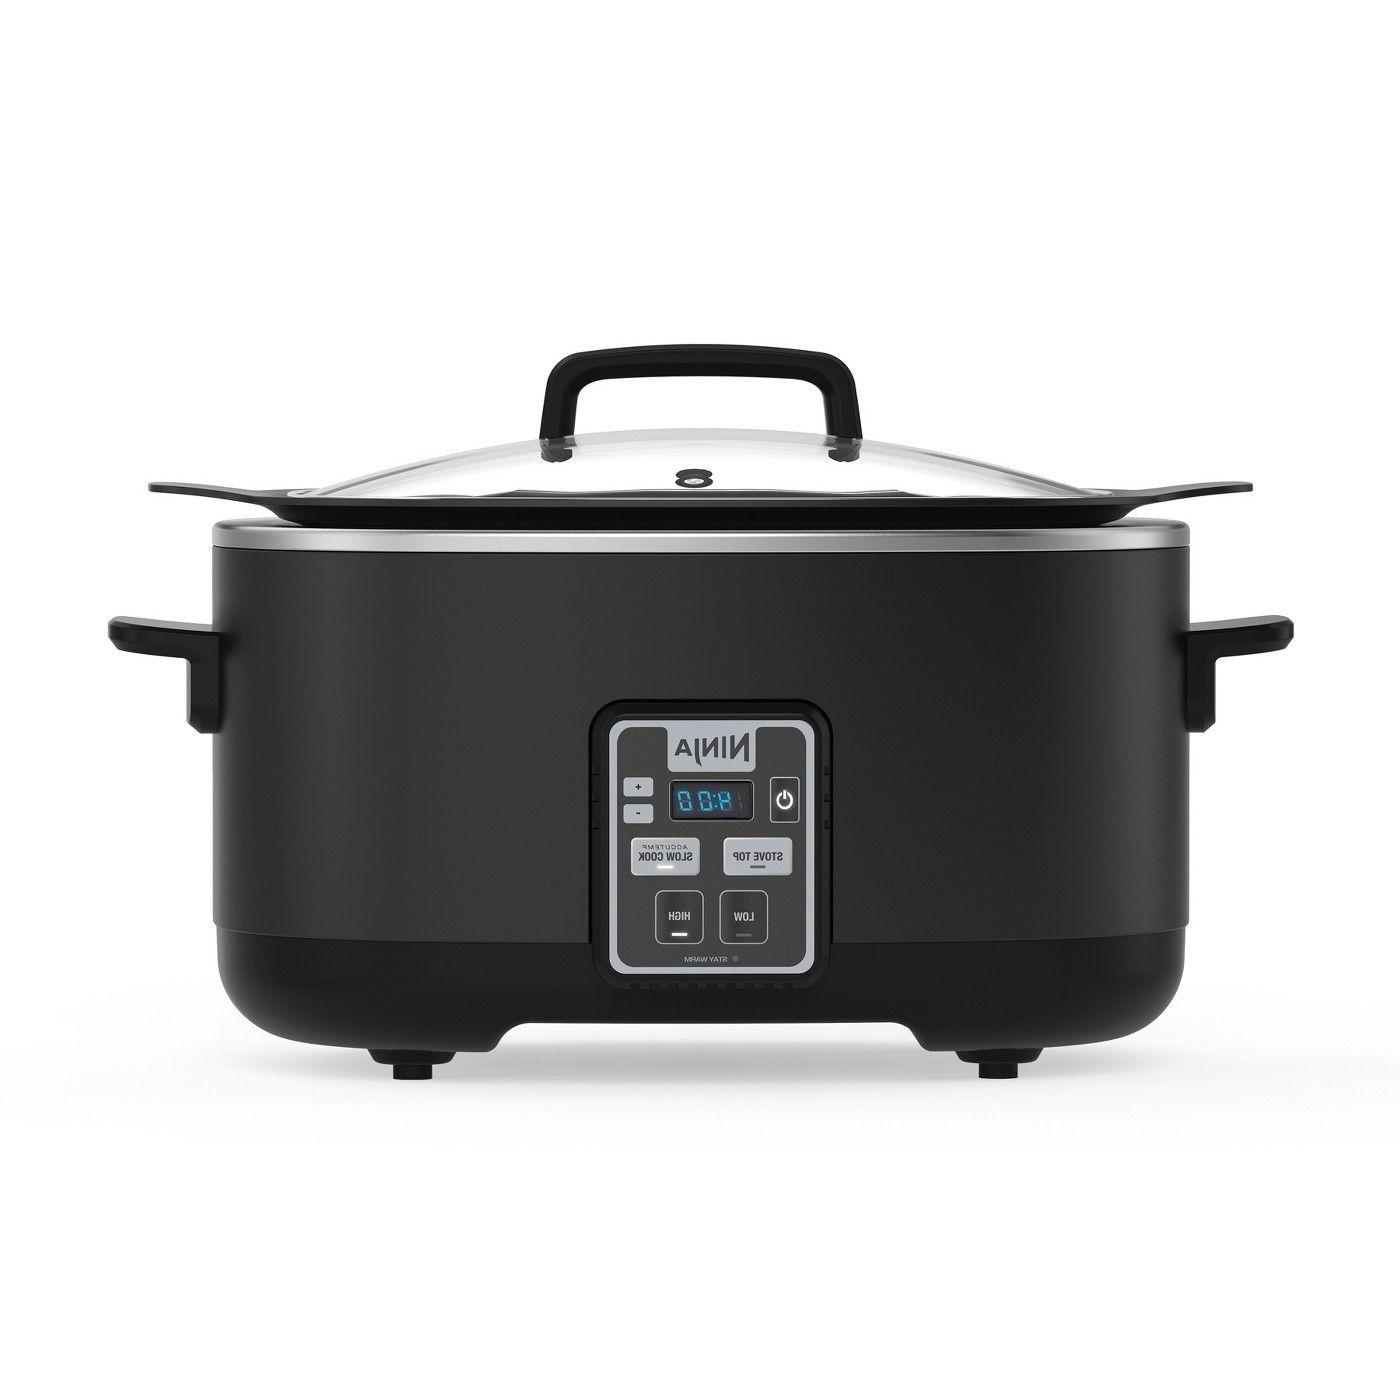 2 in 1 slow cooker 6 qt